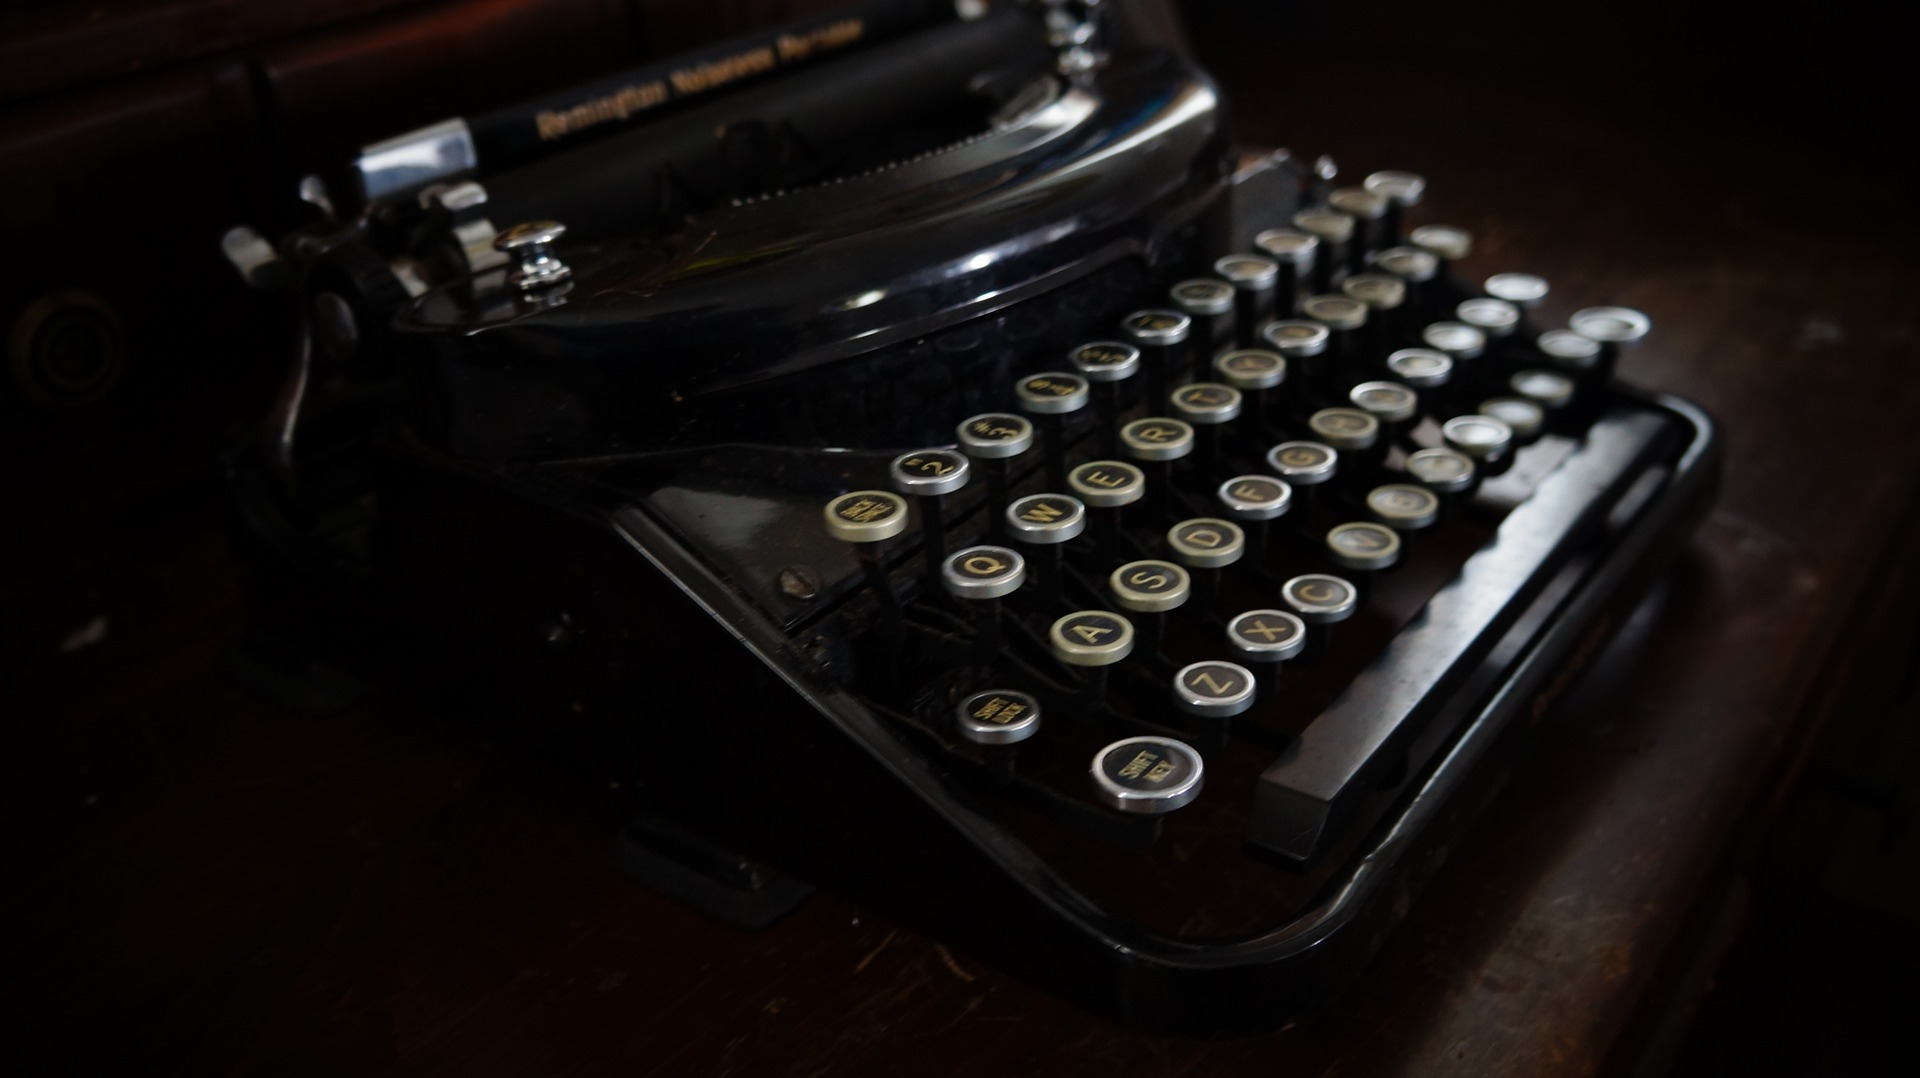 Management Typewriter. Source: https://pixabay.com/de/alte-schreibmaschine-ehemalige-retro-1379166/